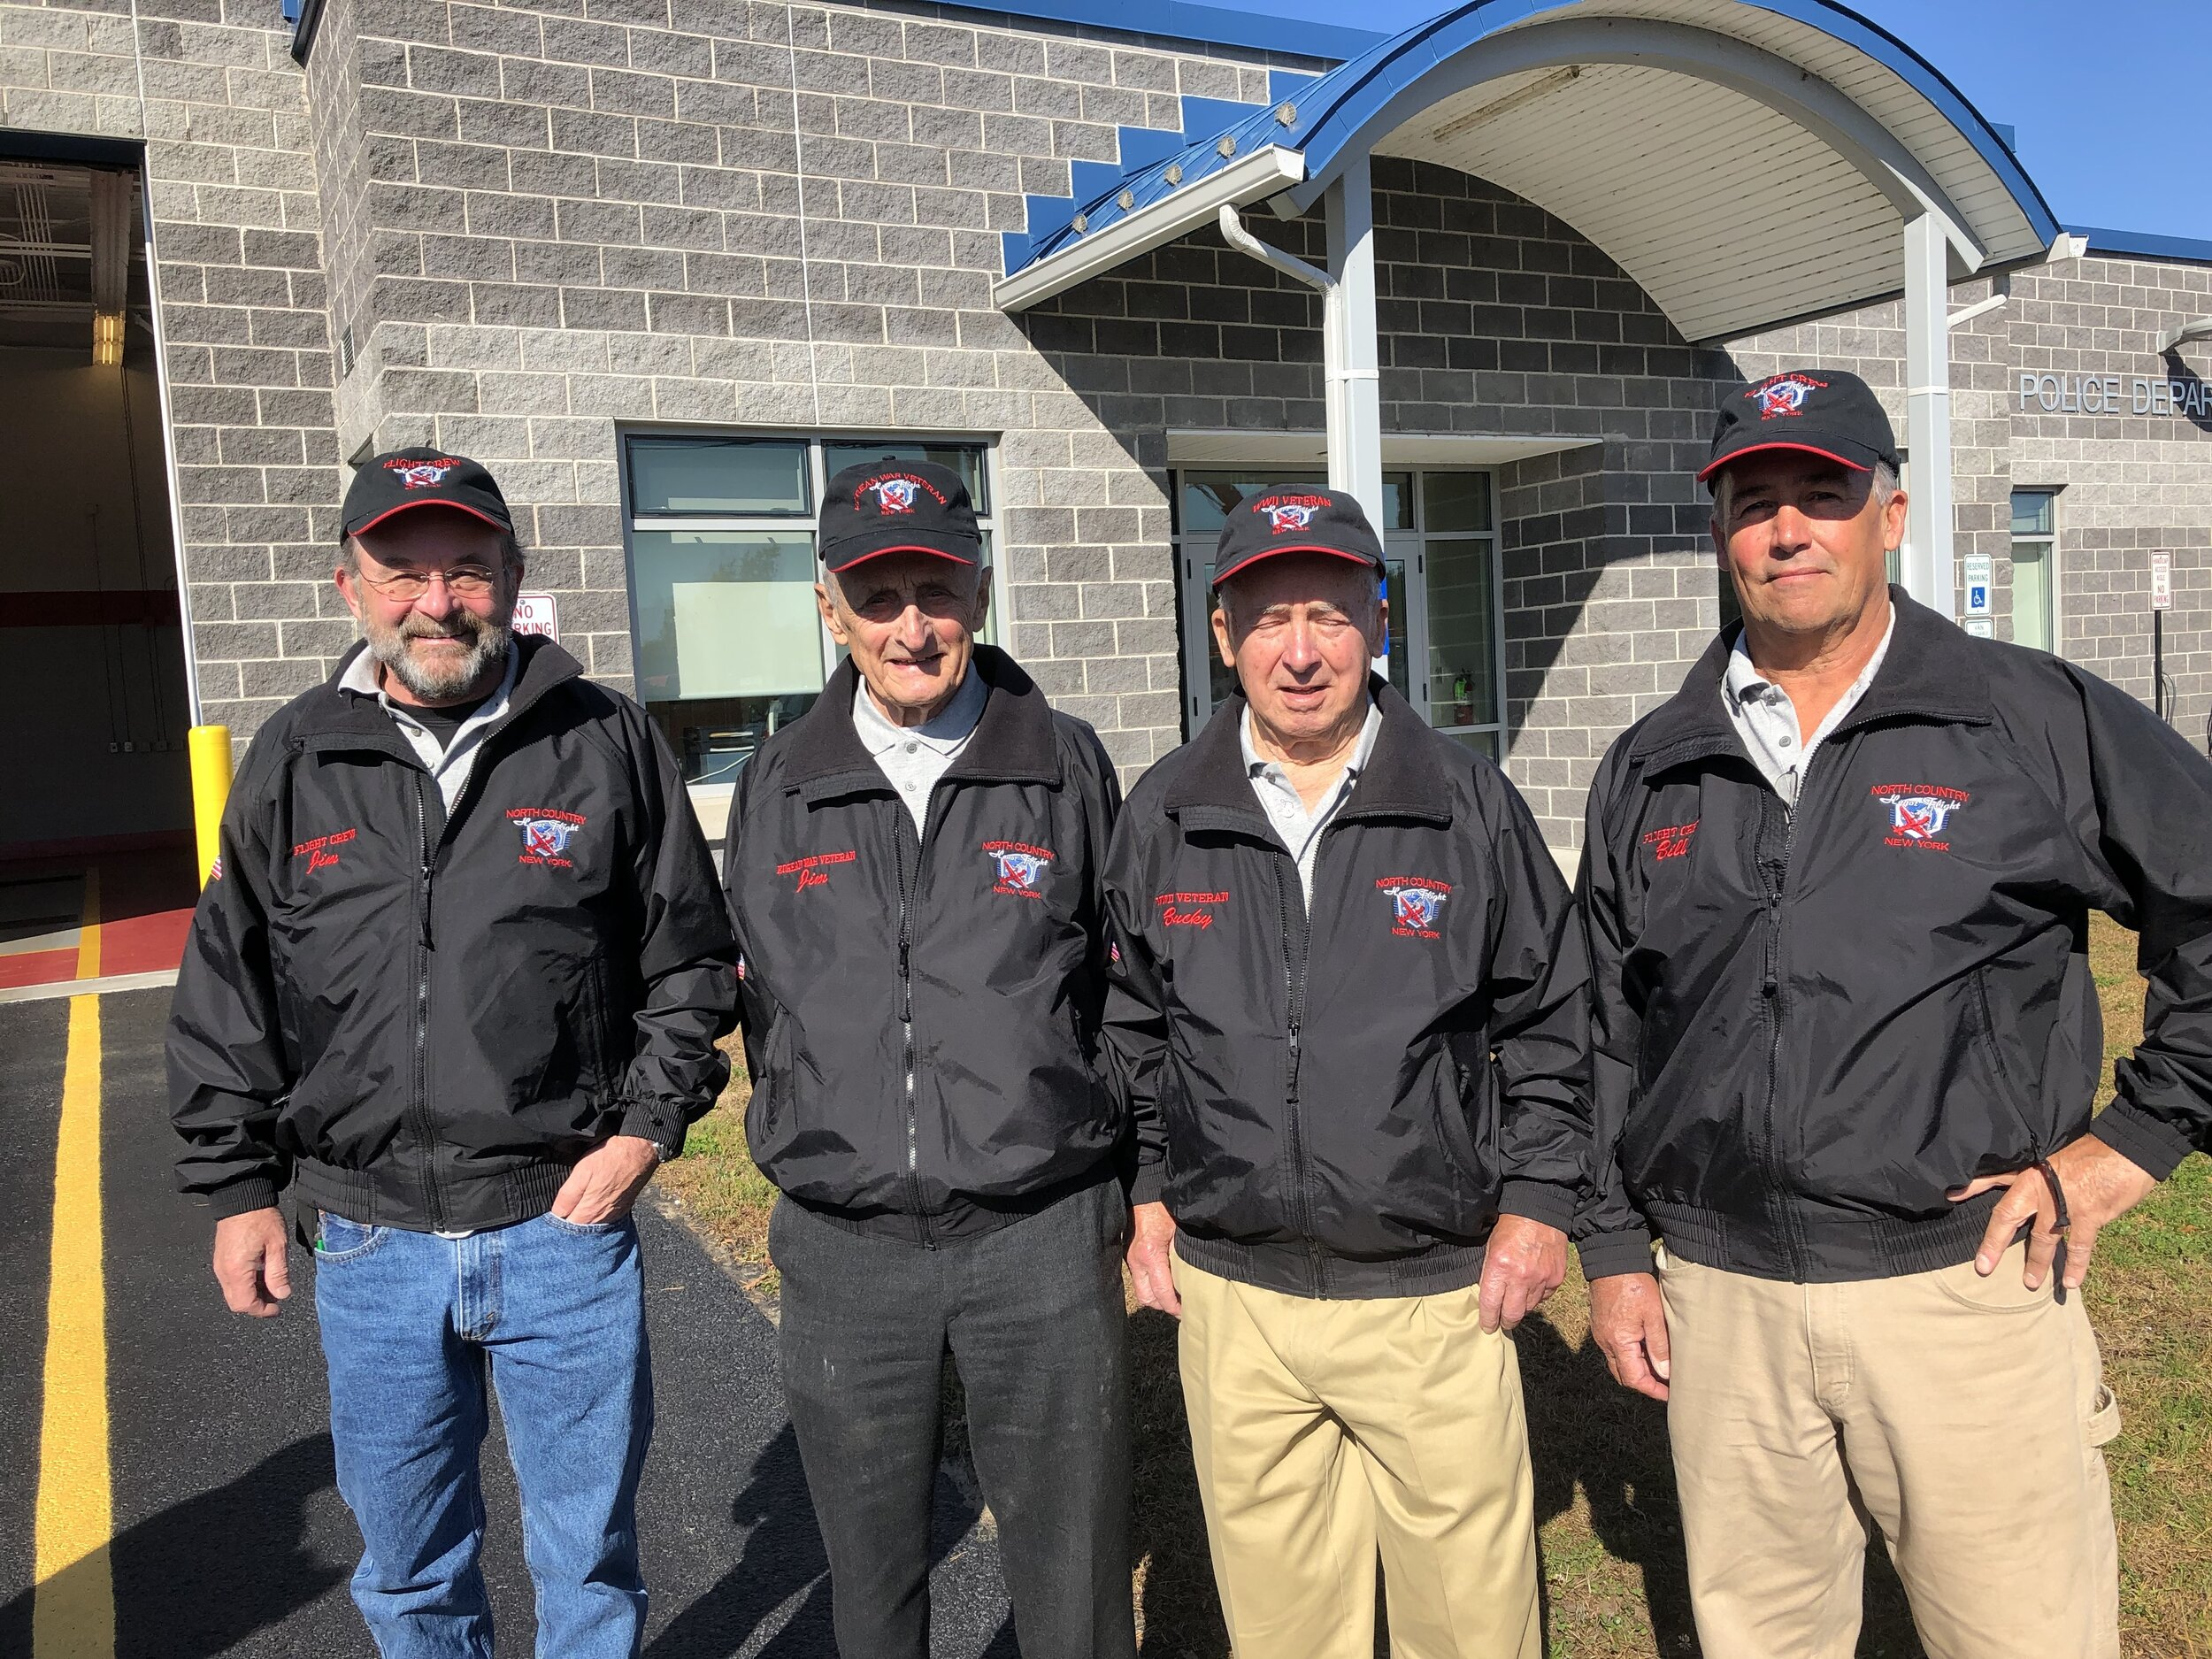 Honor Flight honorees Jim Frenette and Bucky Clark stand outside the village police and fire station with their sons Jim and Bill. (Dan McClelland photos)